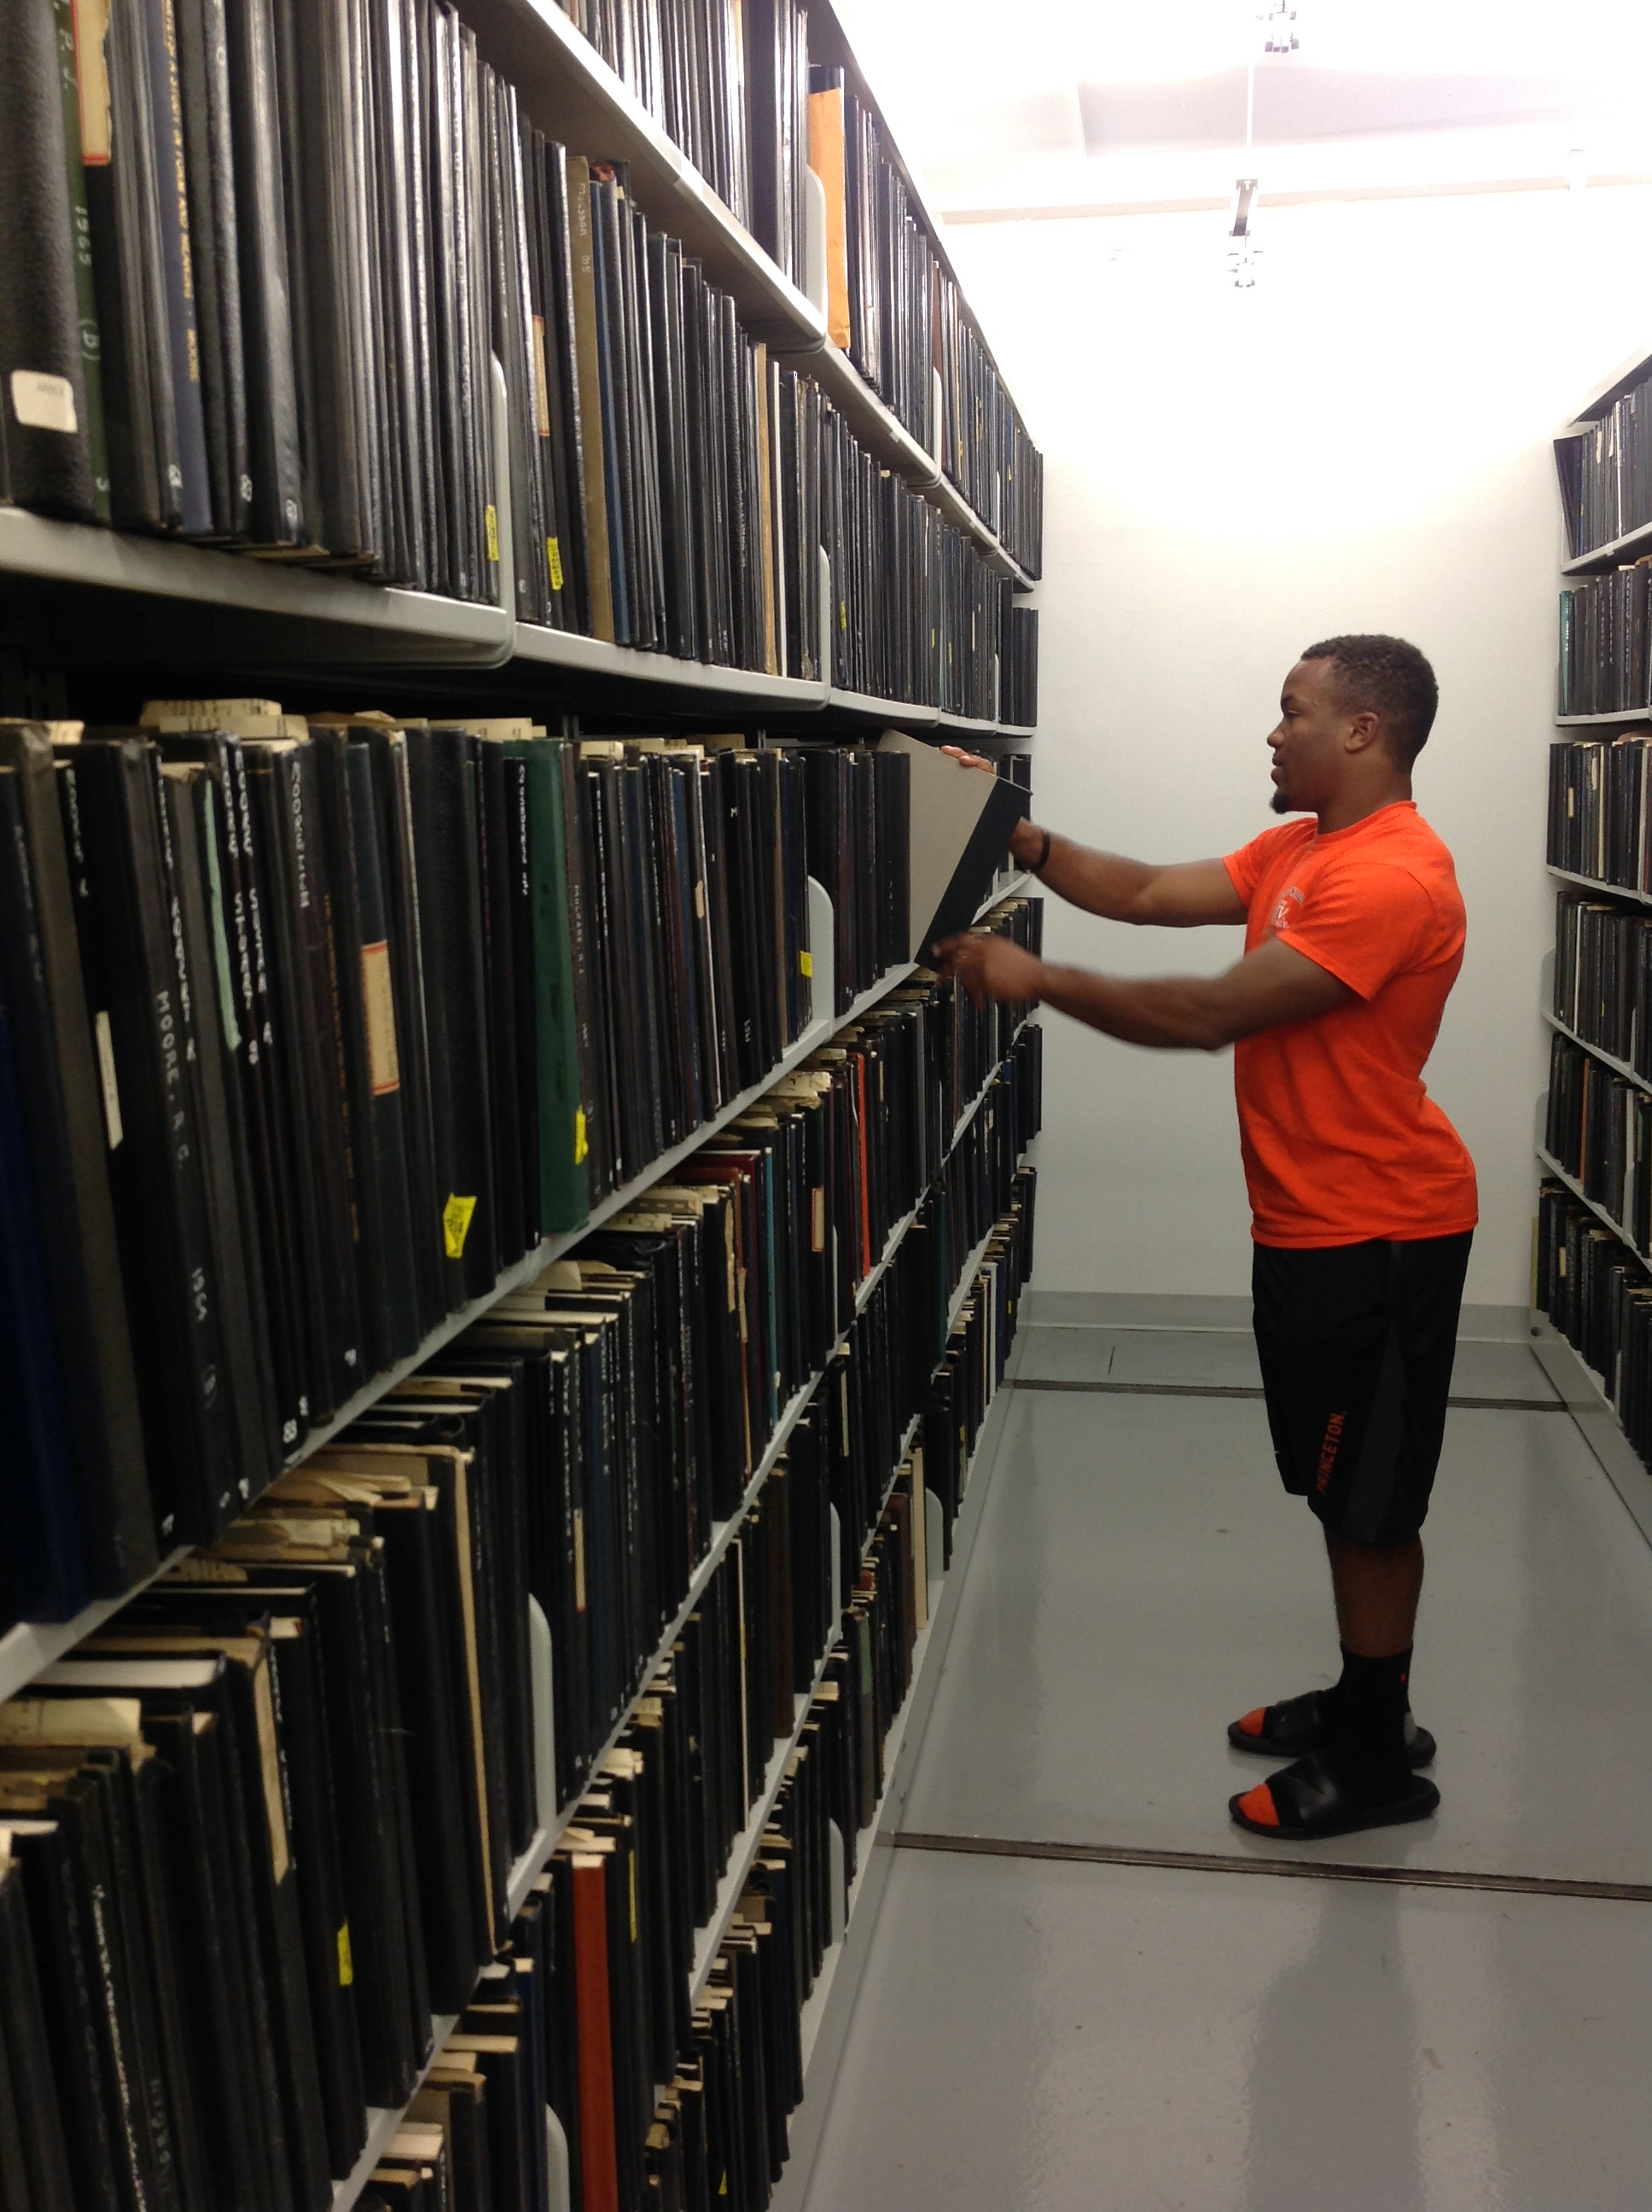 2. Searching for Primary Sources at CPP